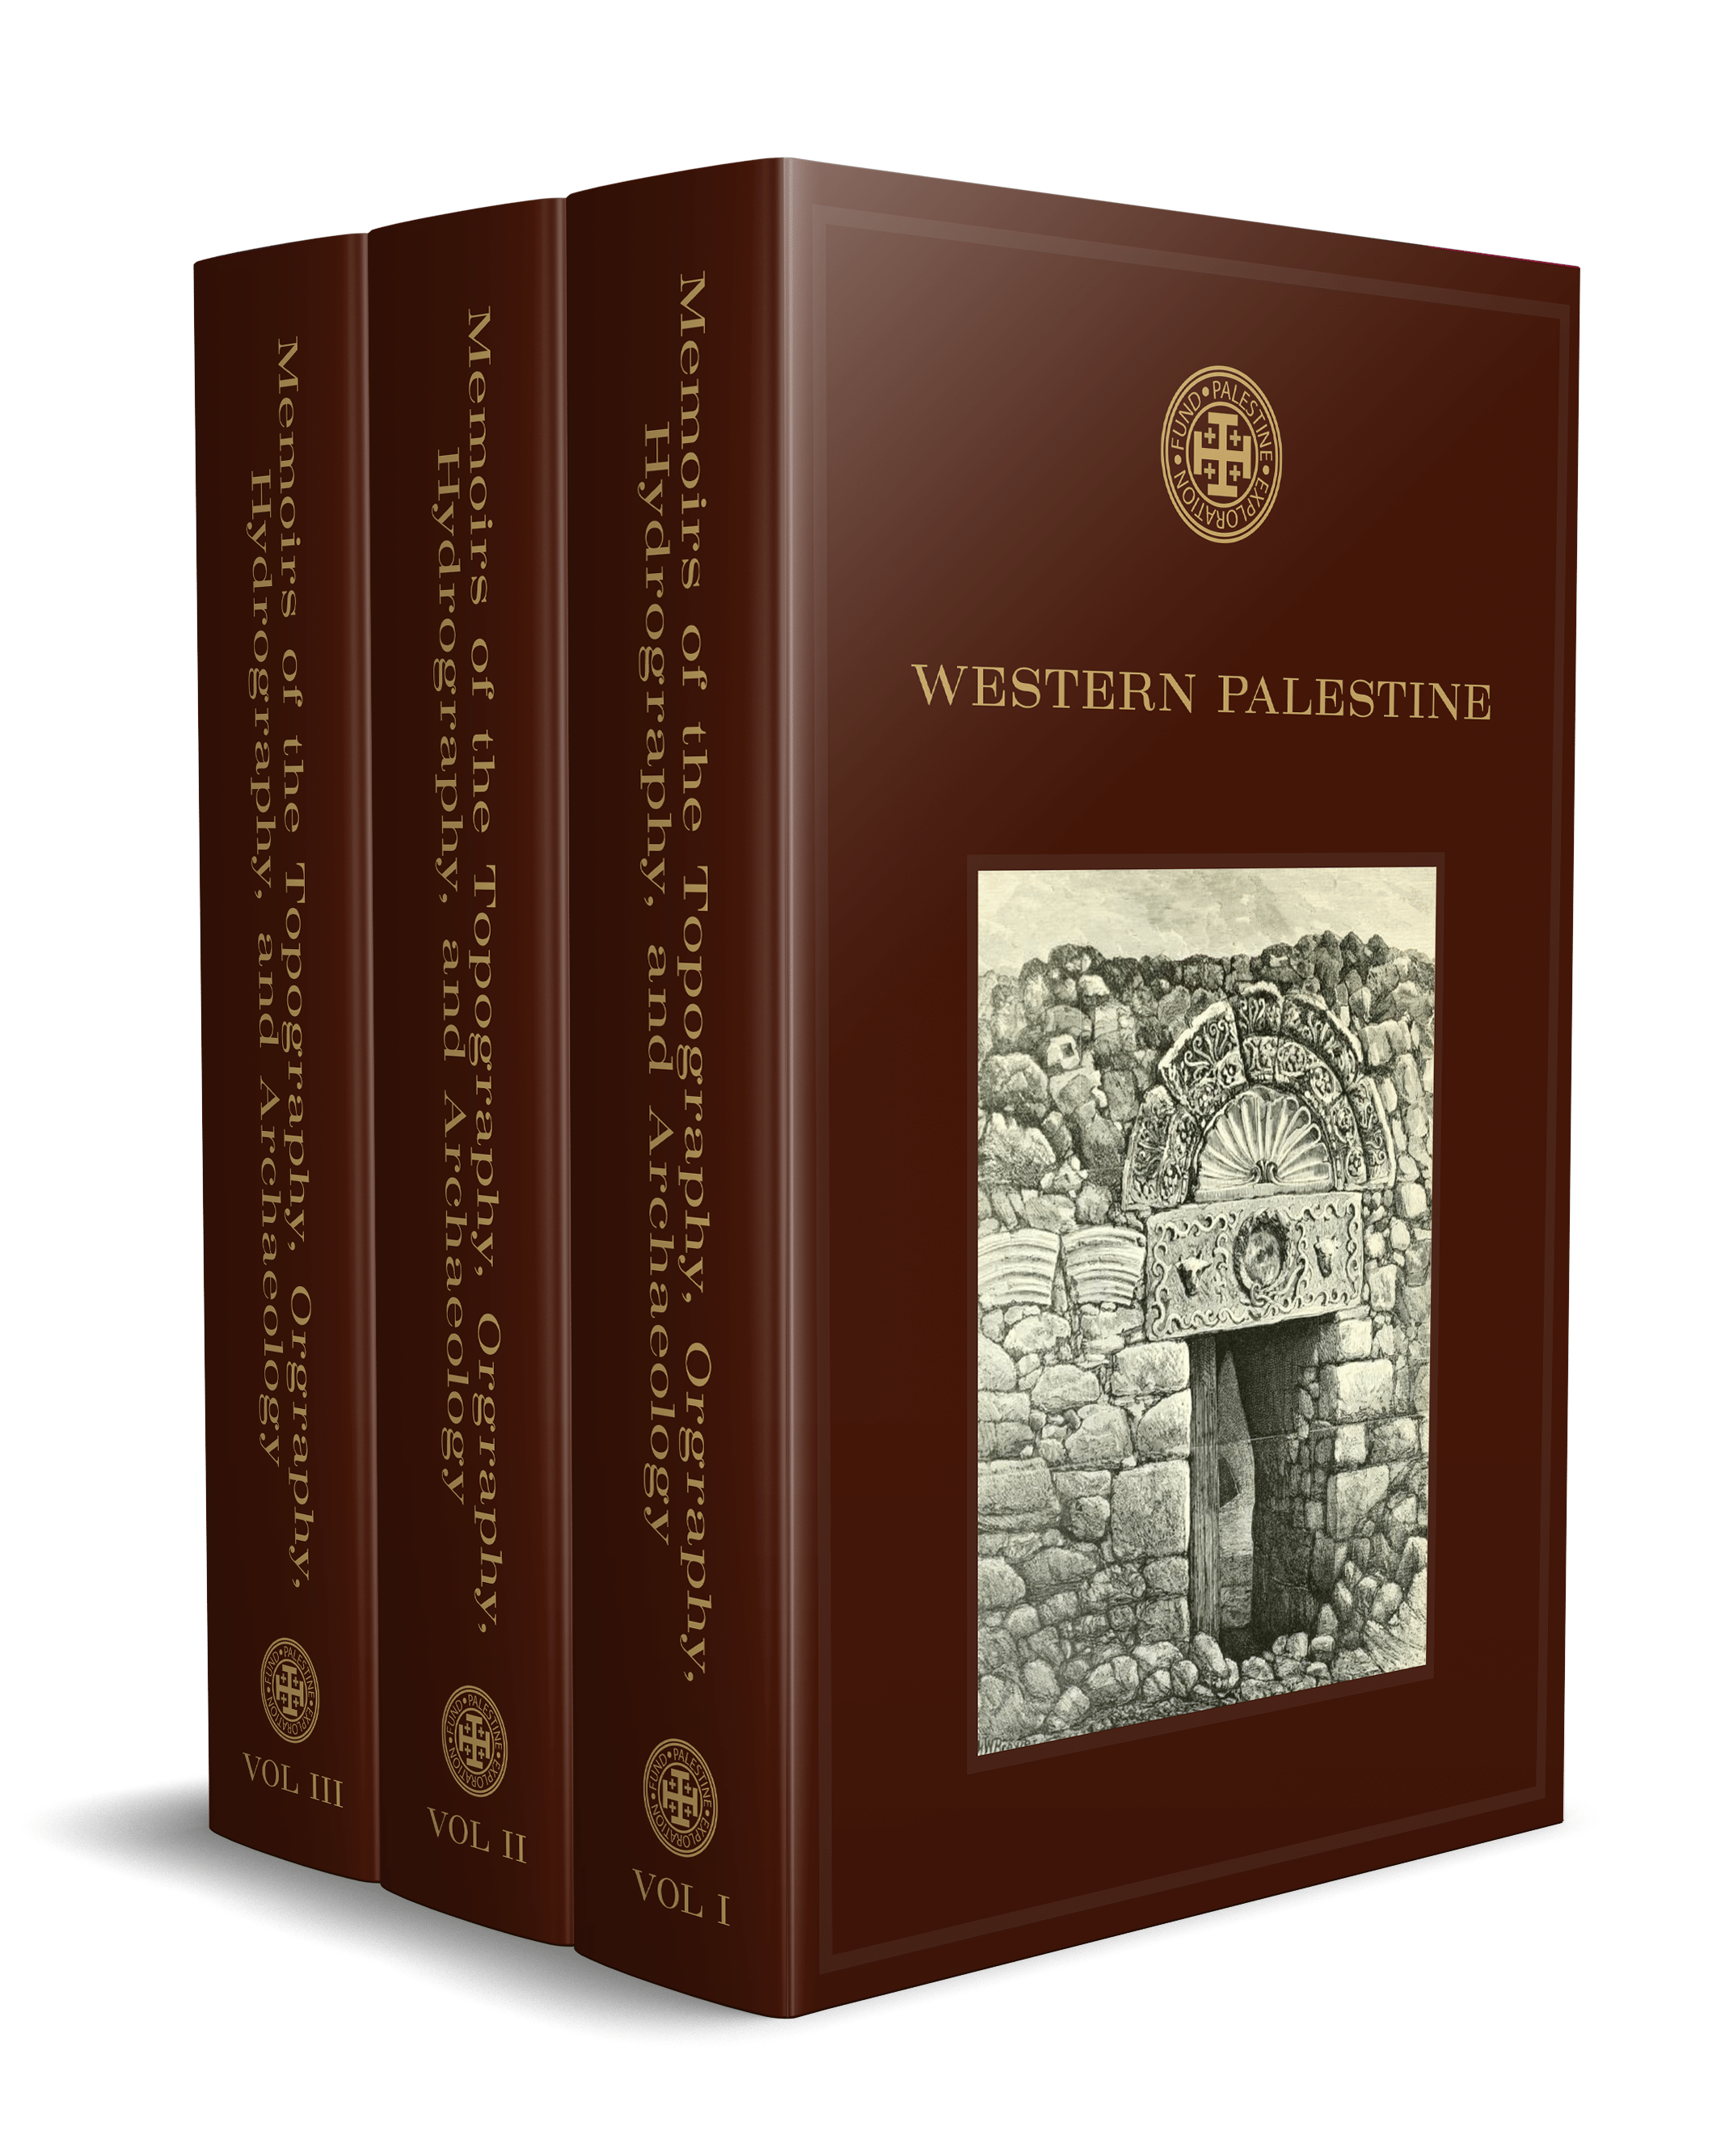 Survey of Western Palestine: Memoirs of the Topography, Orography, Hydrography, and Archaeology